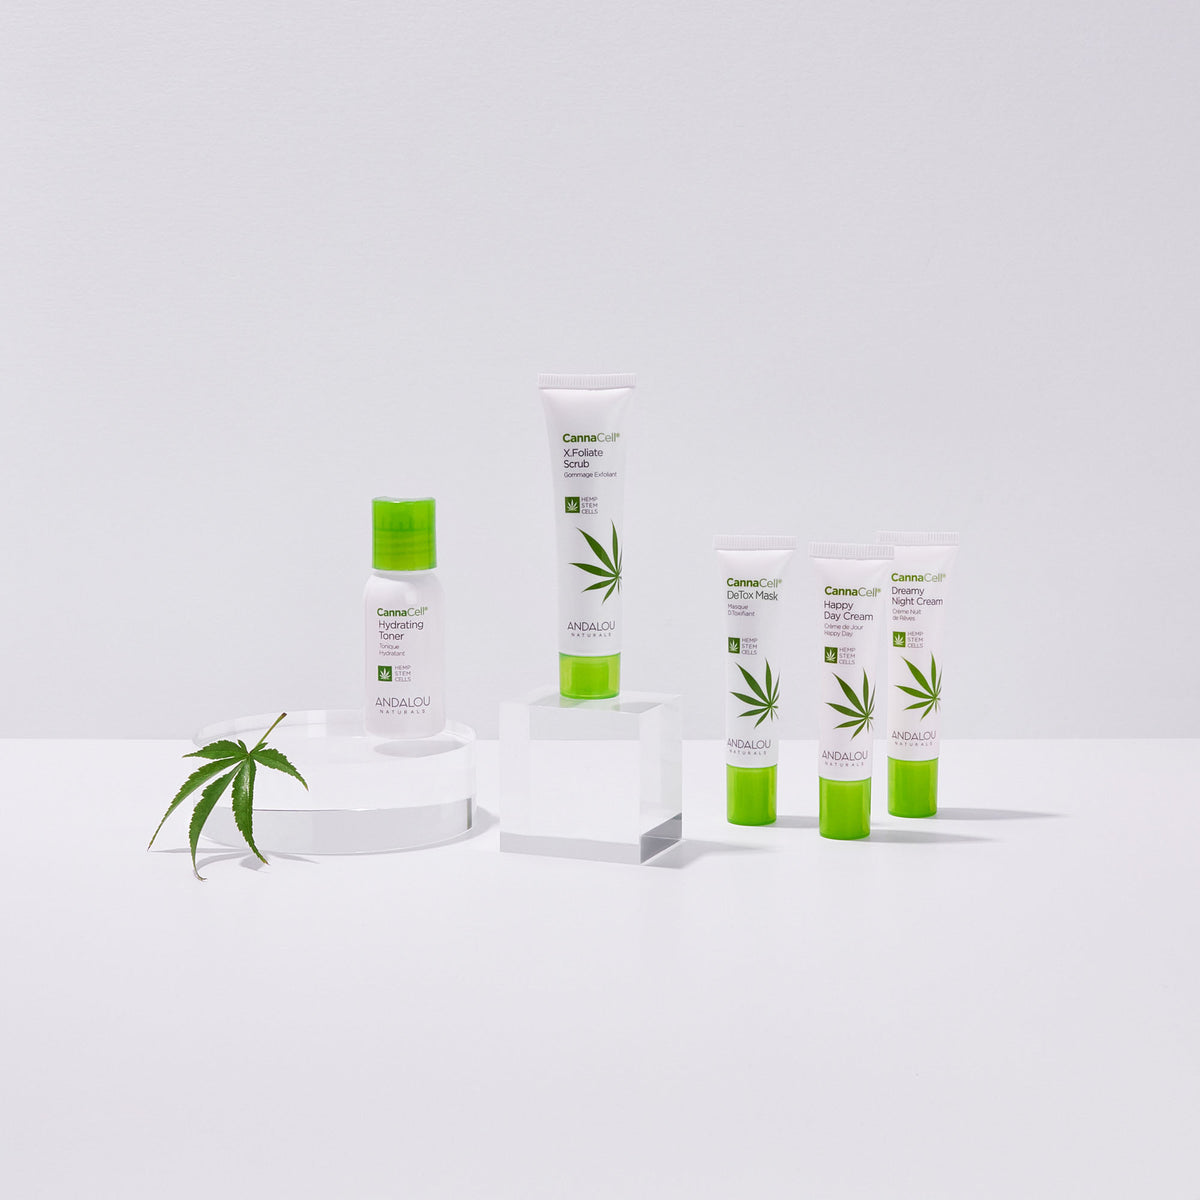 all the products of the Cannacell Get Started Kit with a hemp leaf